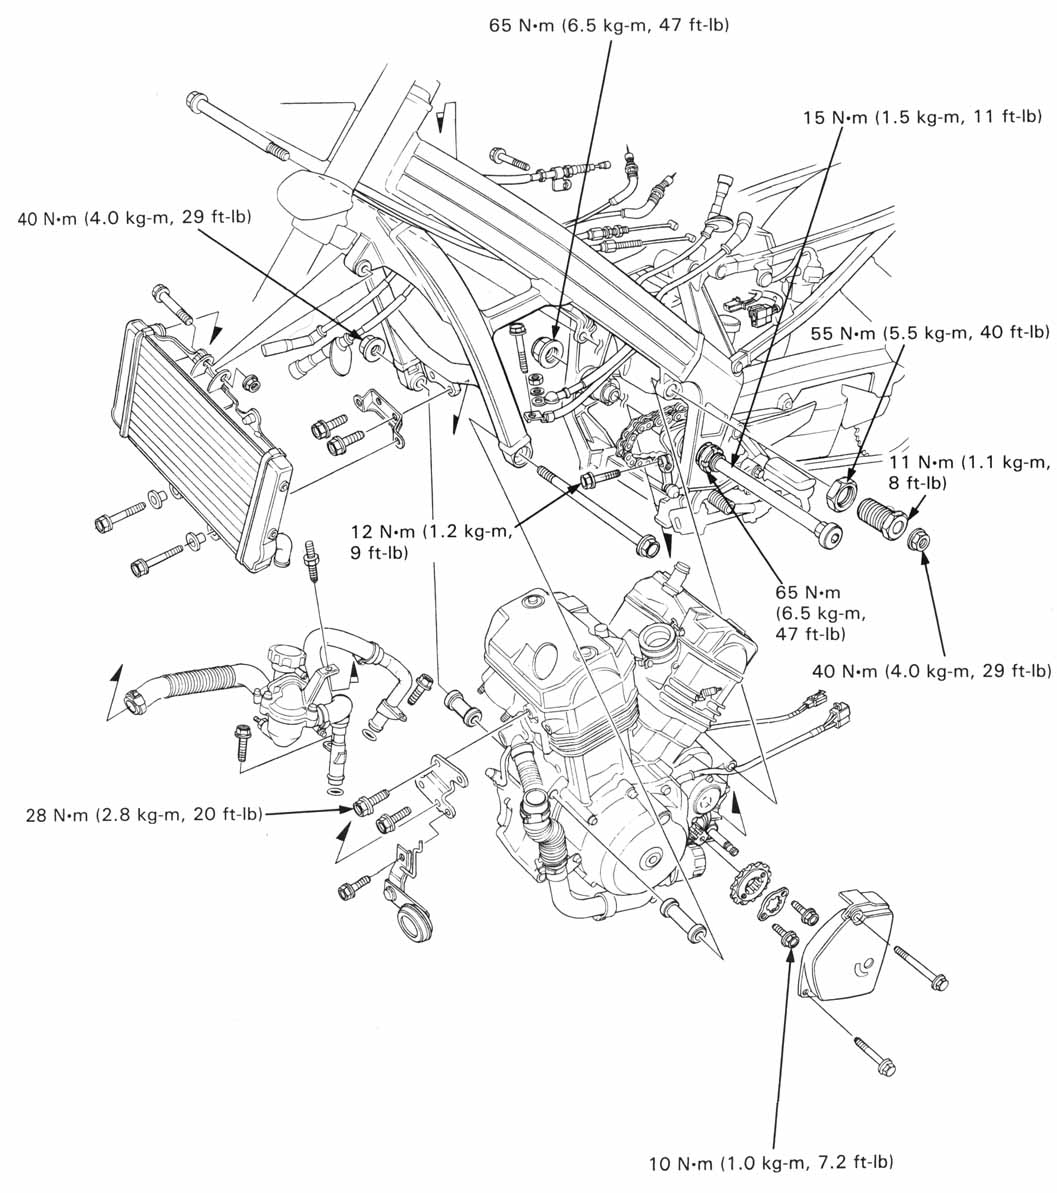 Honda NT650 service manual, section 6, Engine Removal